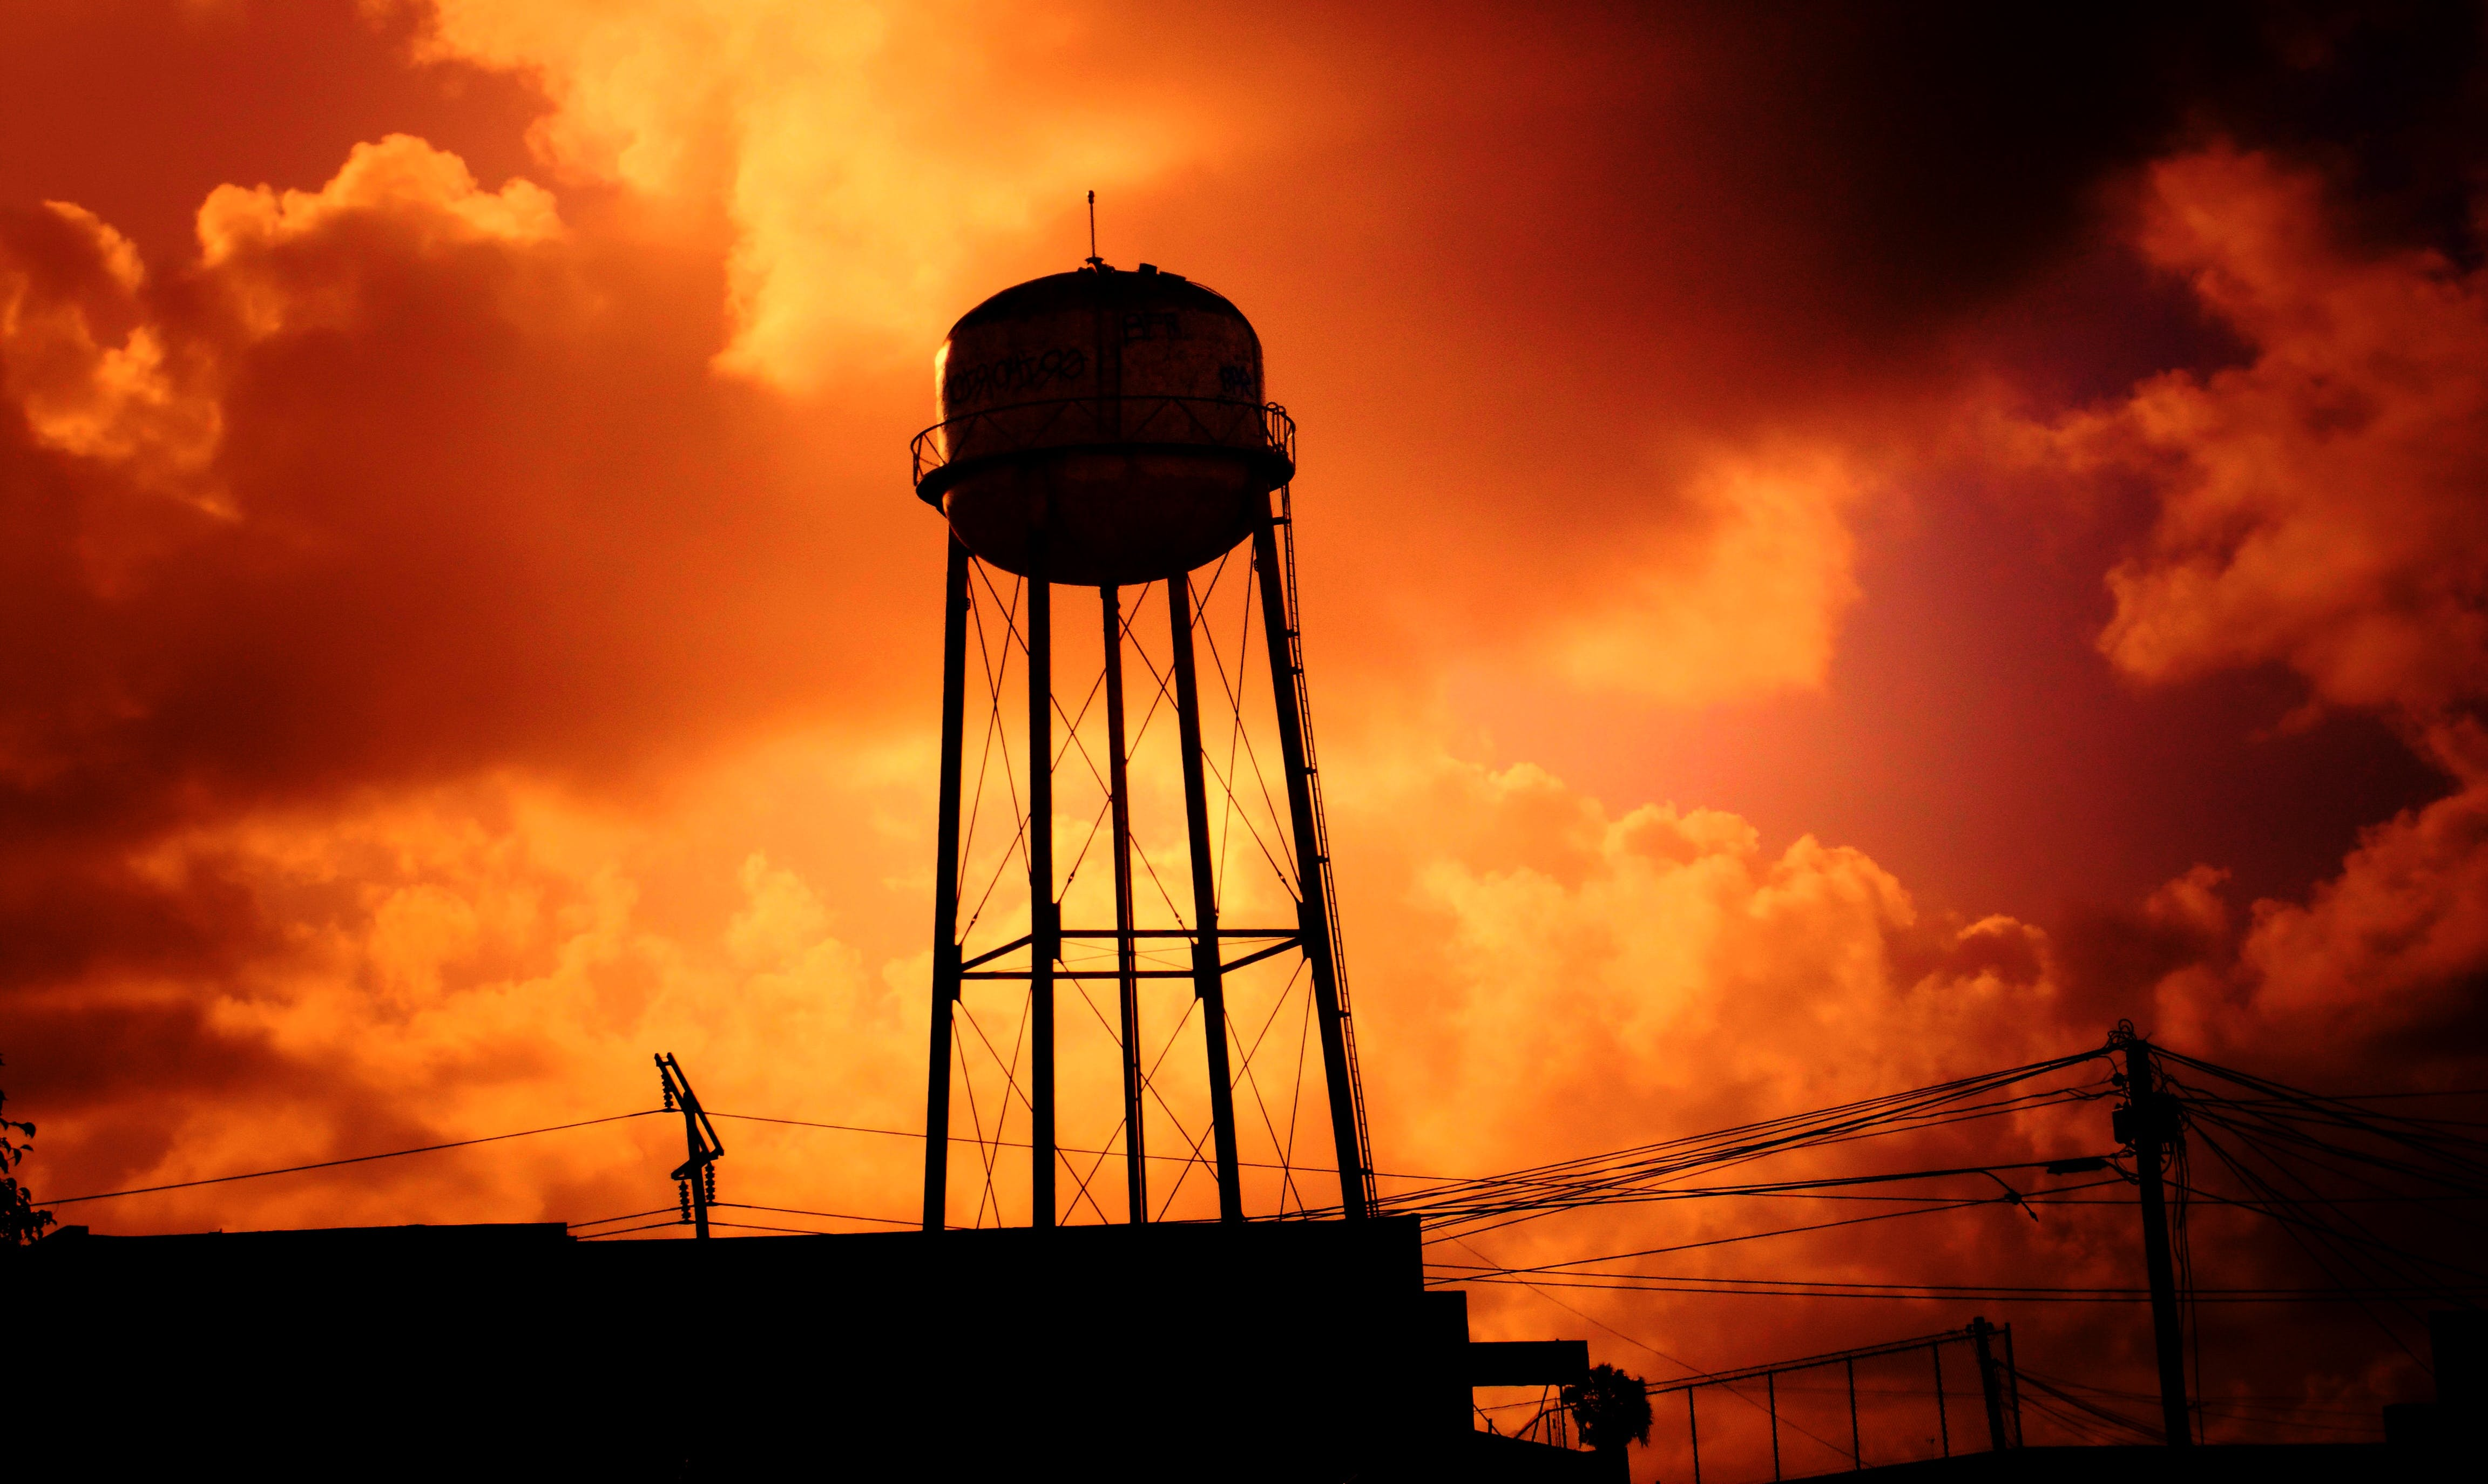 Silhouette of Water Tank